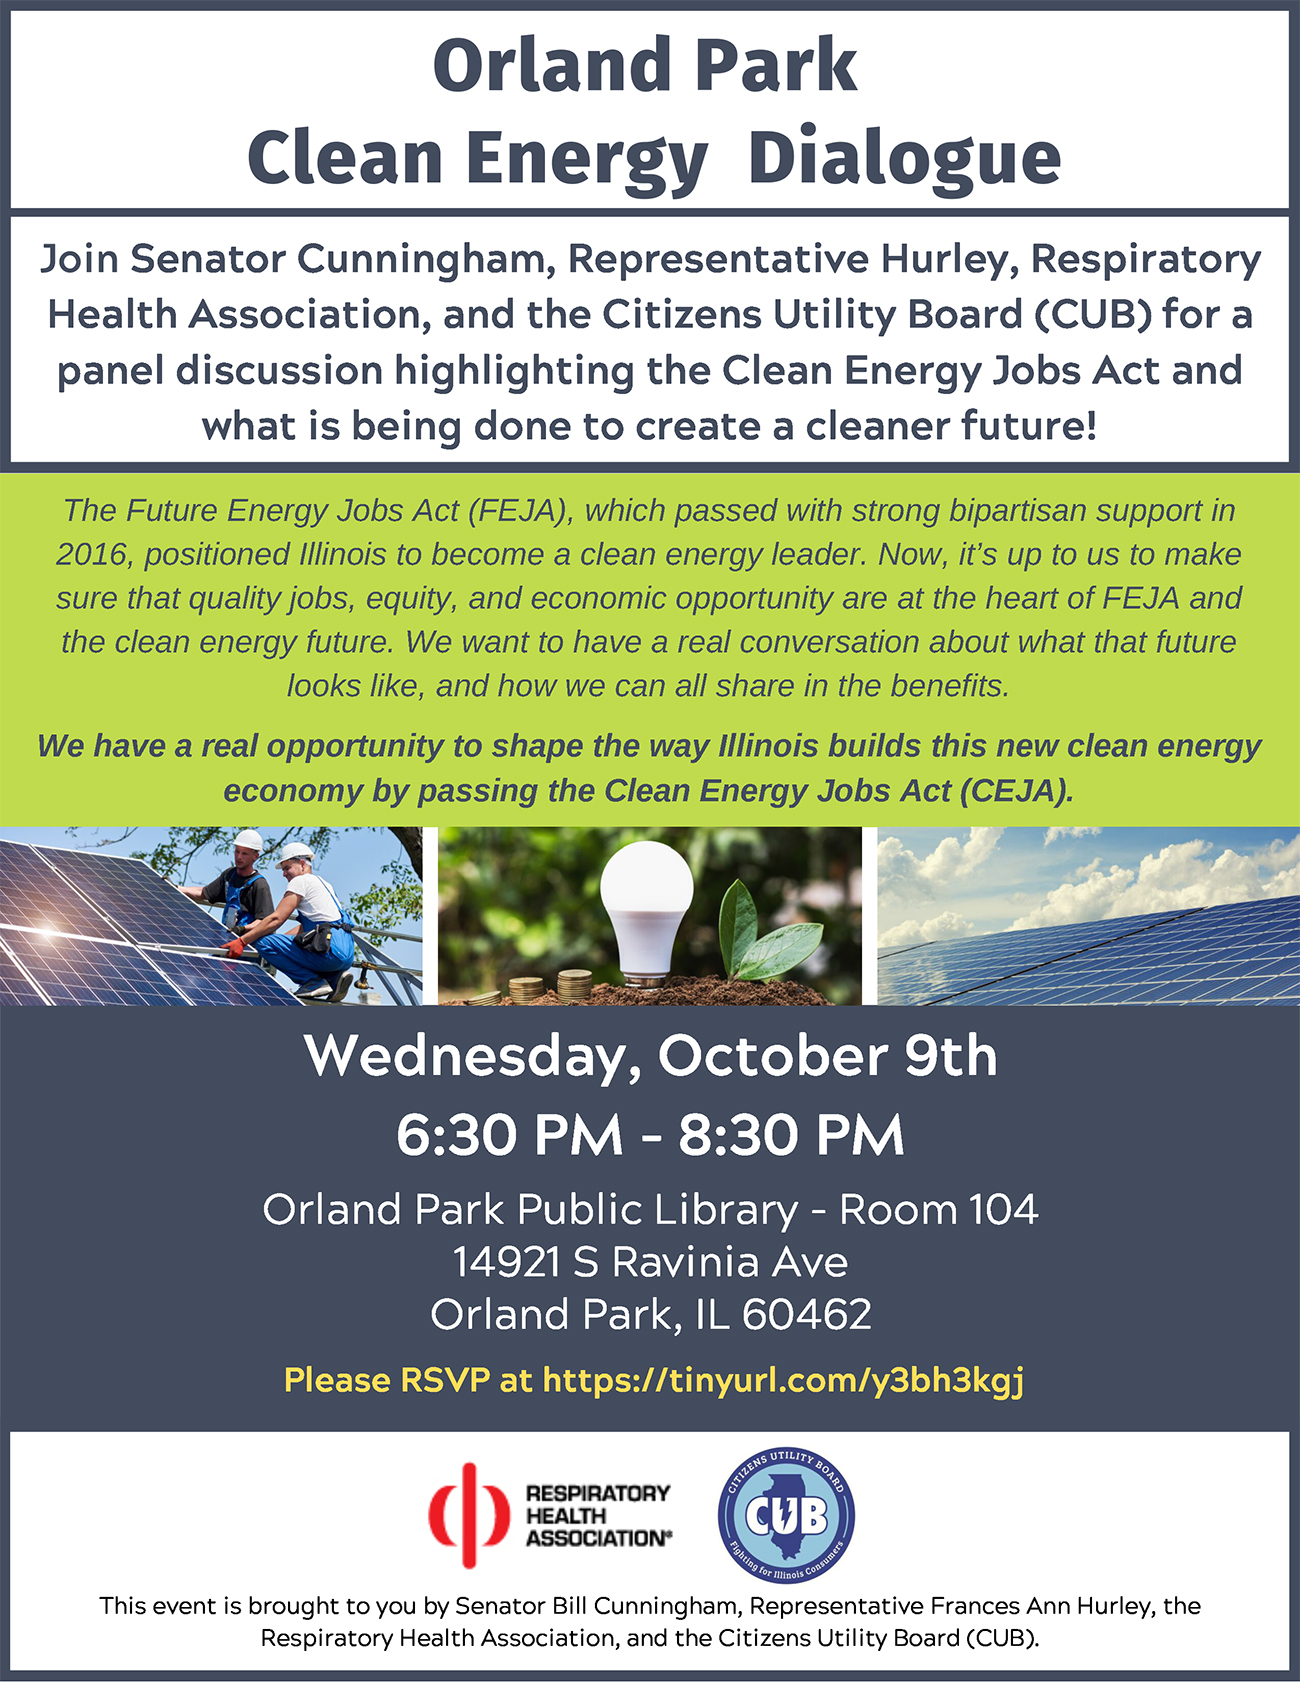 Orland Park Clean Energy Listing Tour